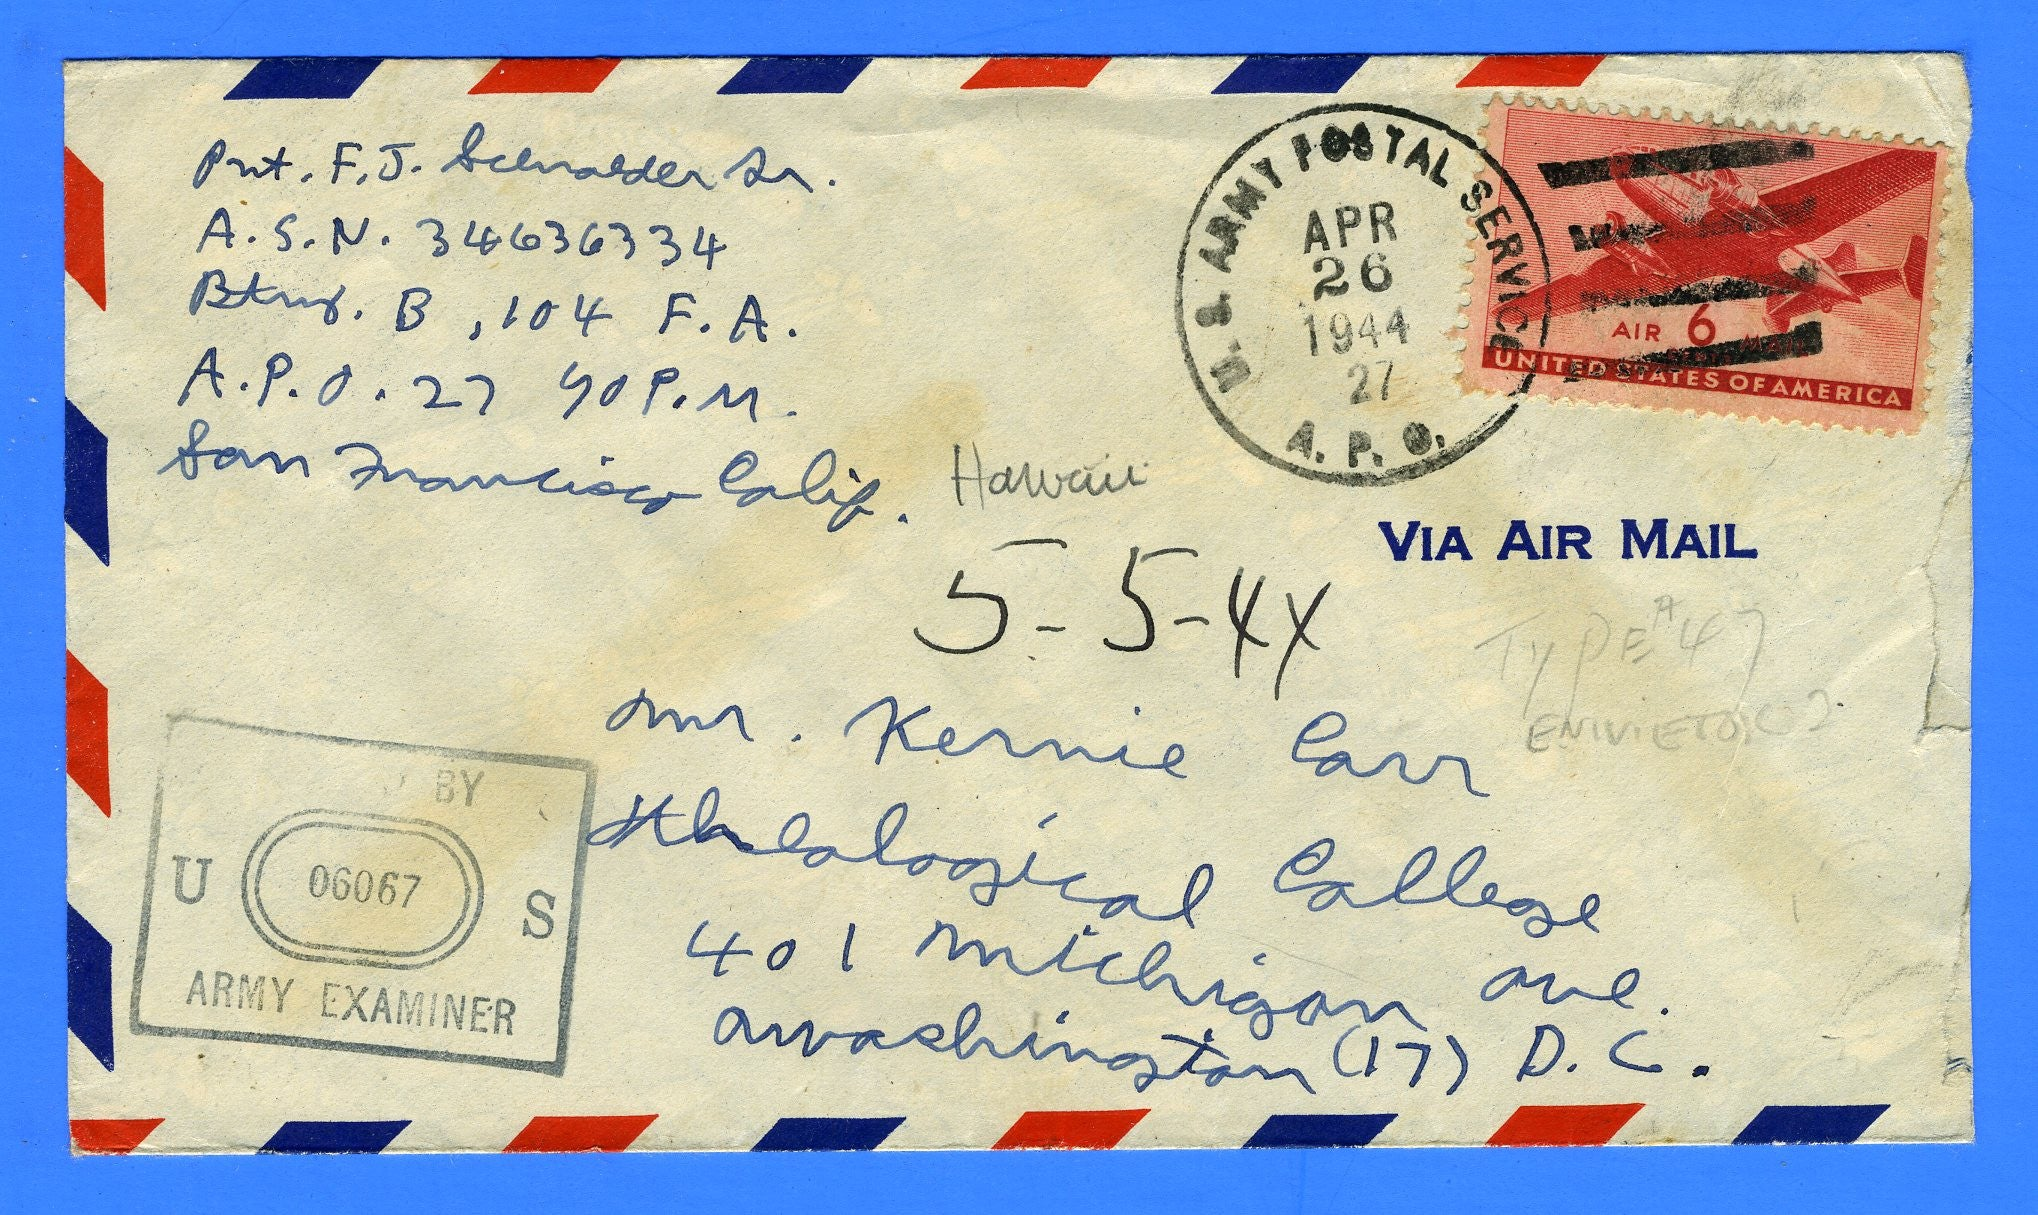 Soldier's Censored Mail APO 27 Eniwetok, Marshall Islands April 26, 1944